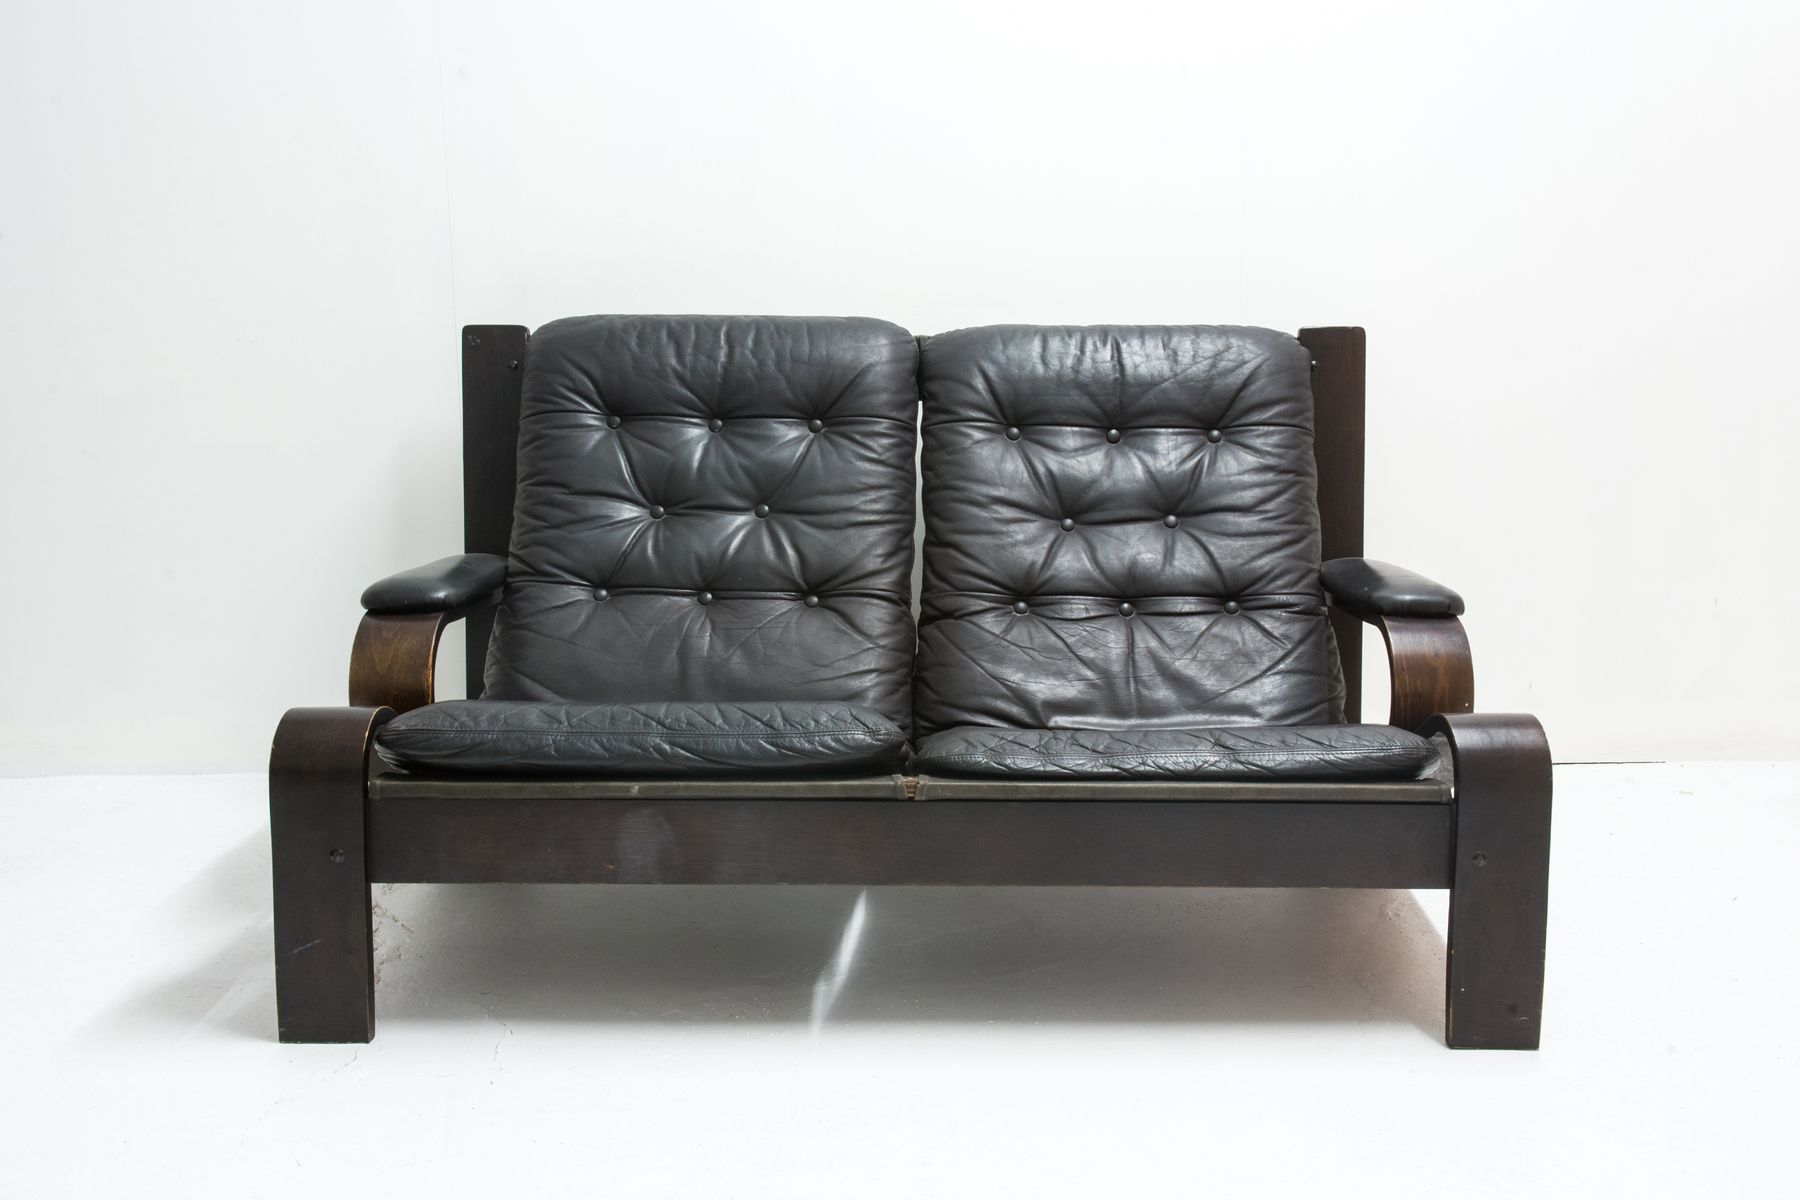 vintage 2 sitzer sofa aus leder holz bei pamono kaufen. Black Bedroom Furniture Sets. Home Design Ideas